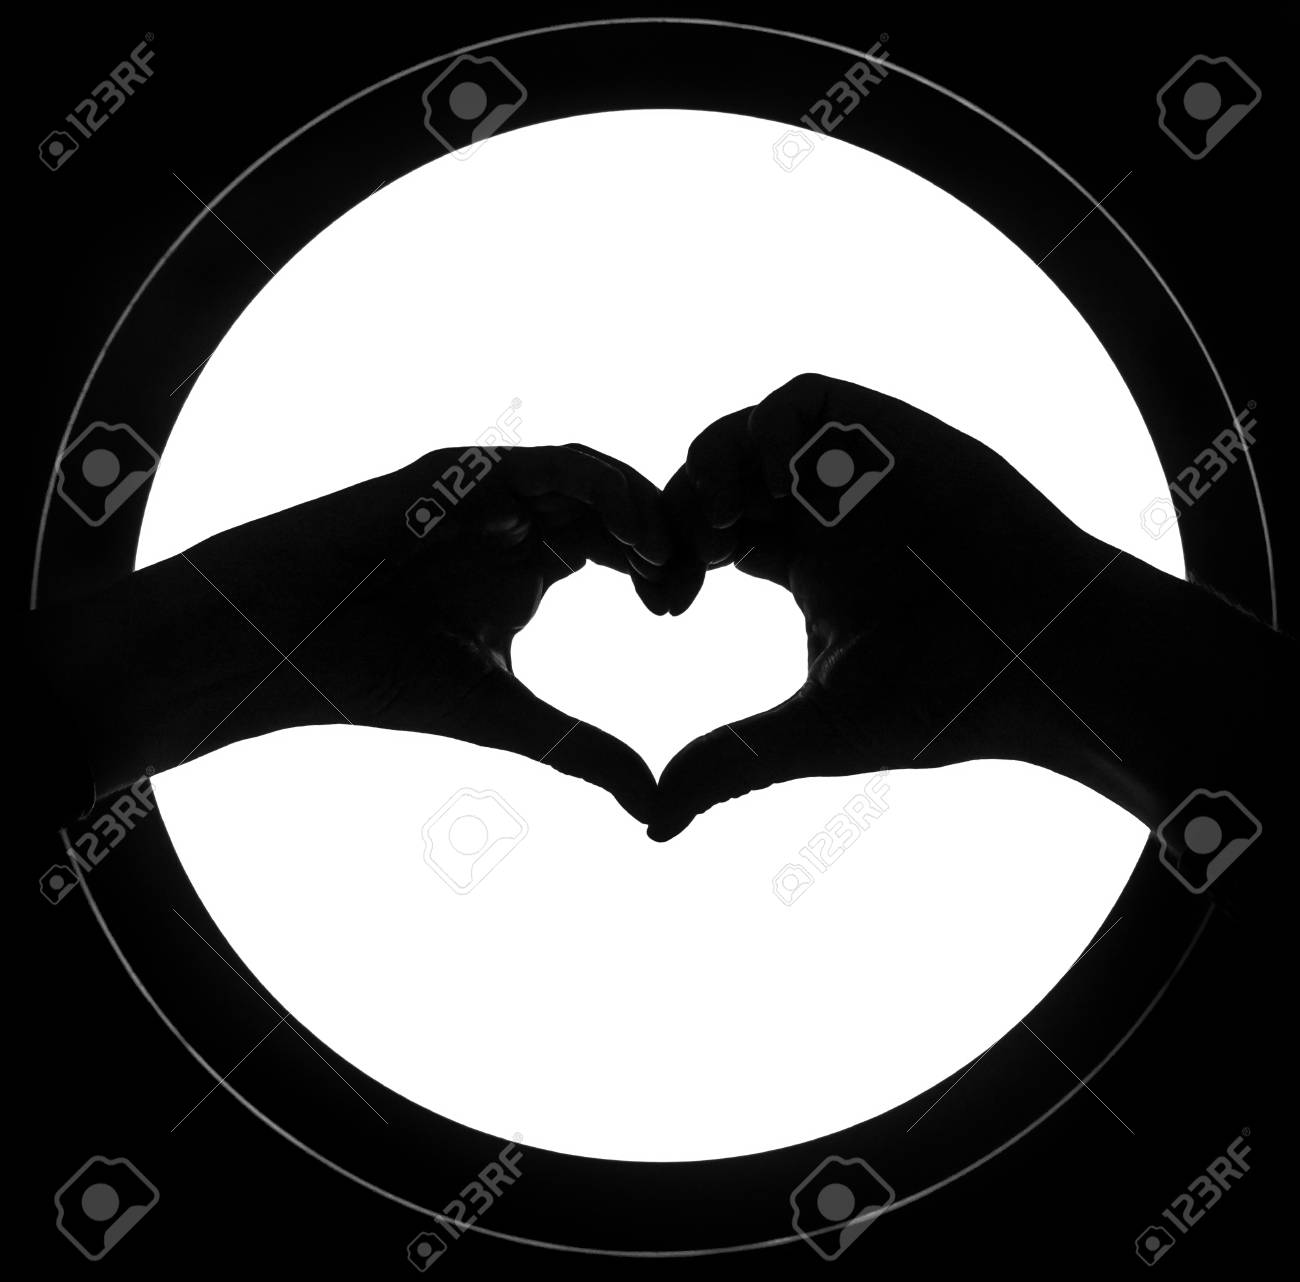 Hands In The Form Of Heart Isolated Background Heart Symbol Stock